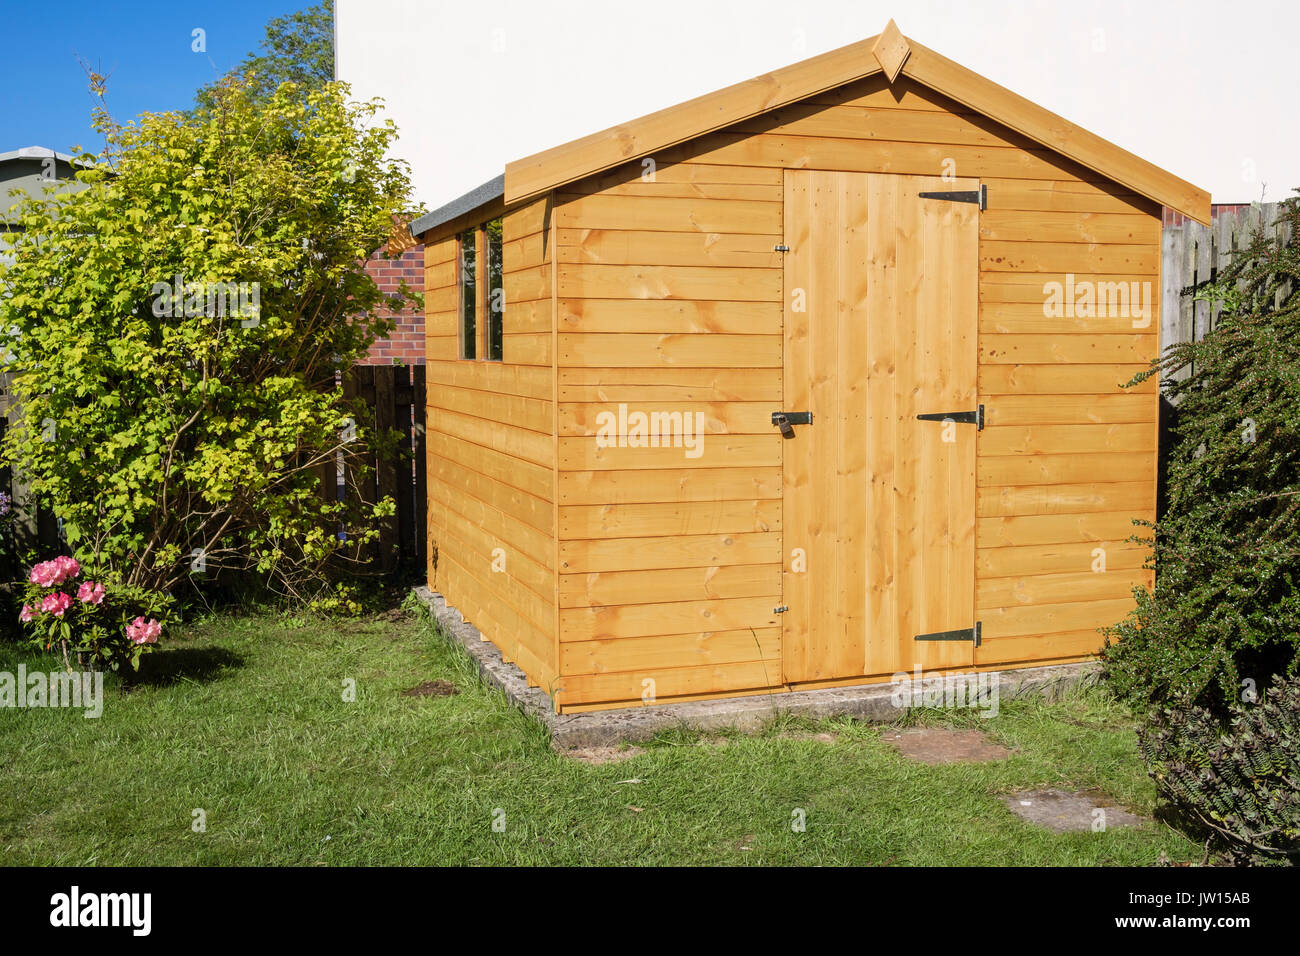 New wooden garden shed in corner of a domestic backyard. UK, Britain - Stock Image